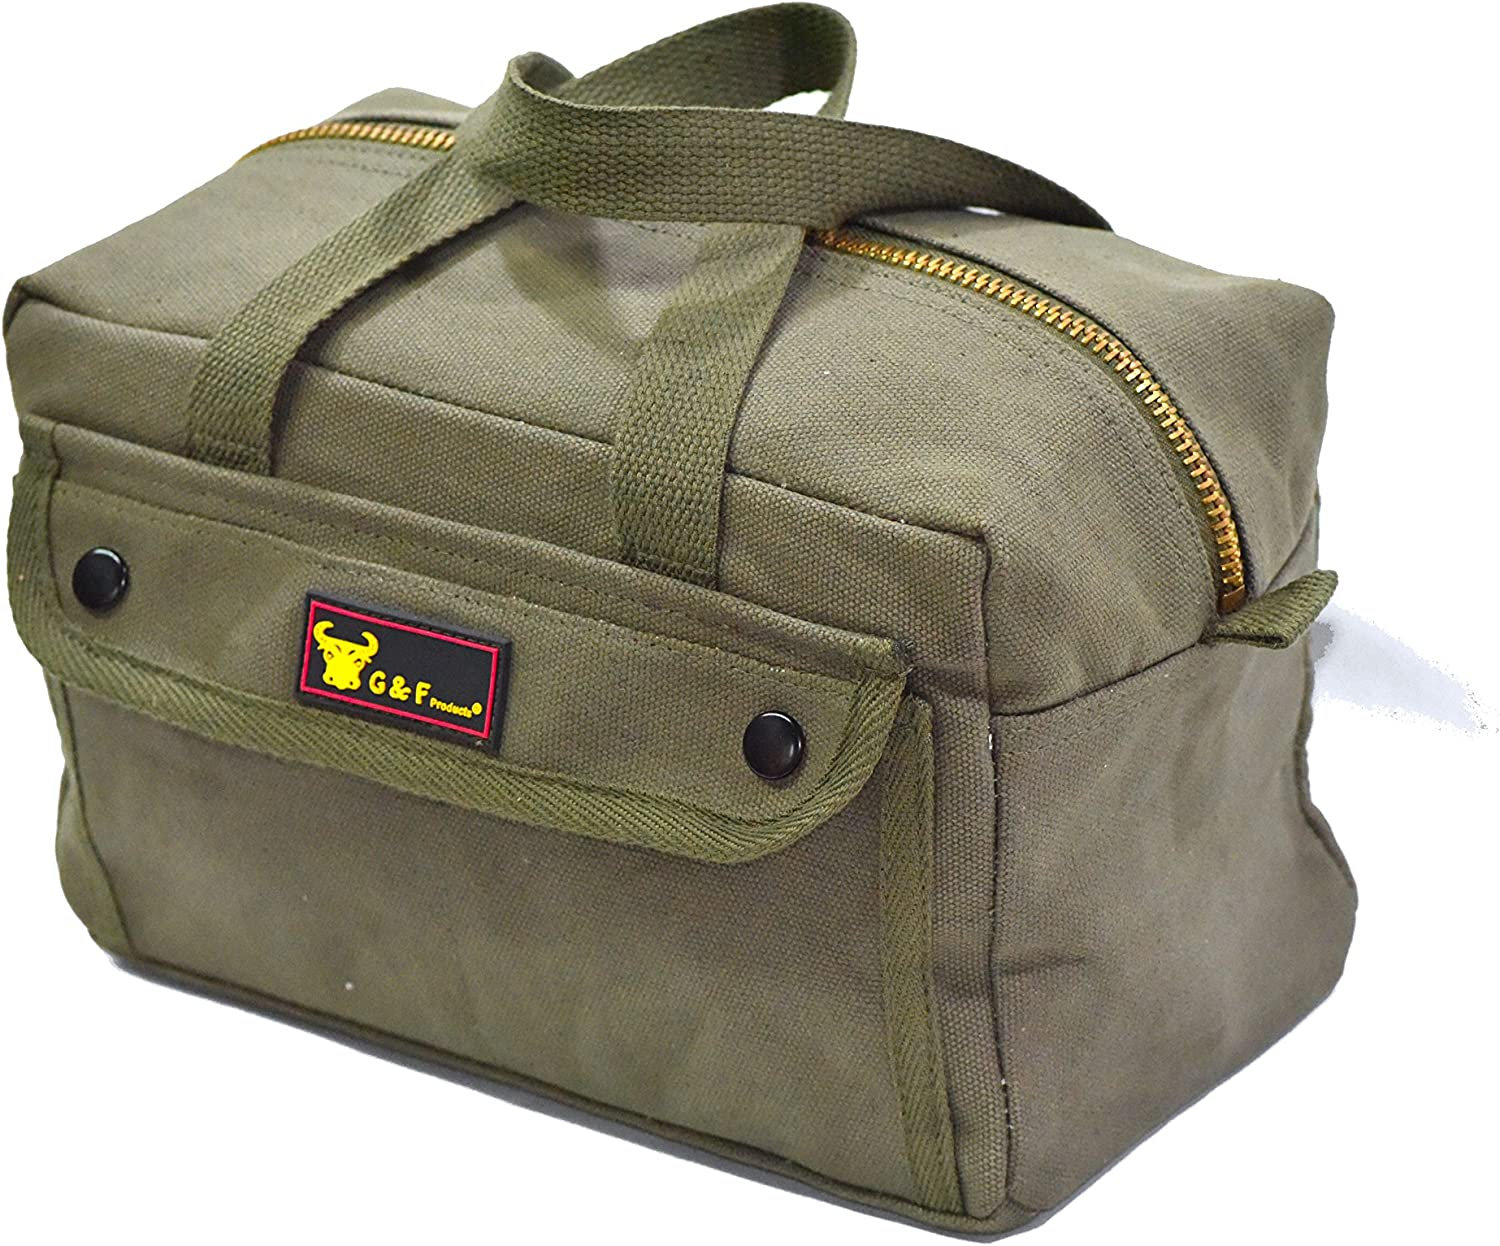 Government Issued Style Tool Bag By .G & F Products